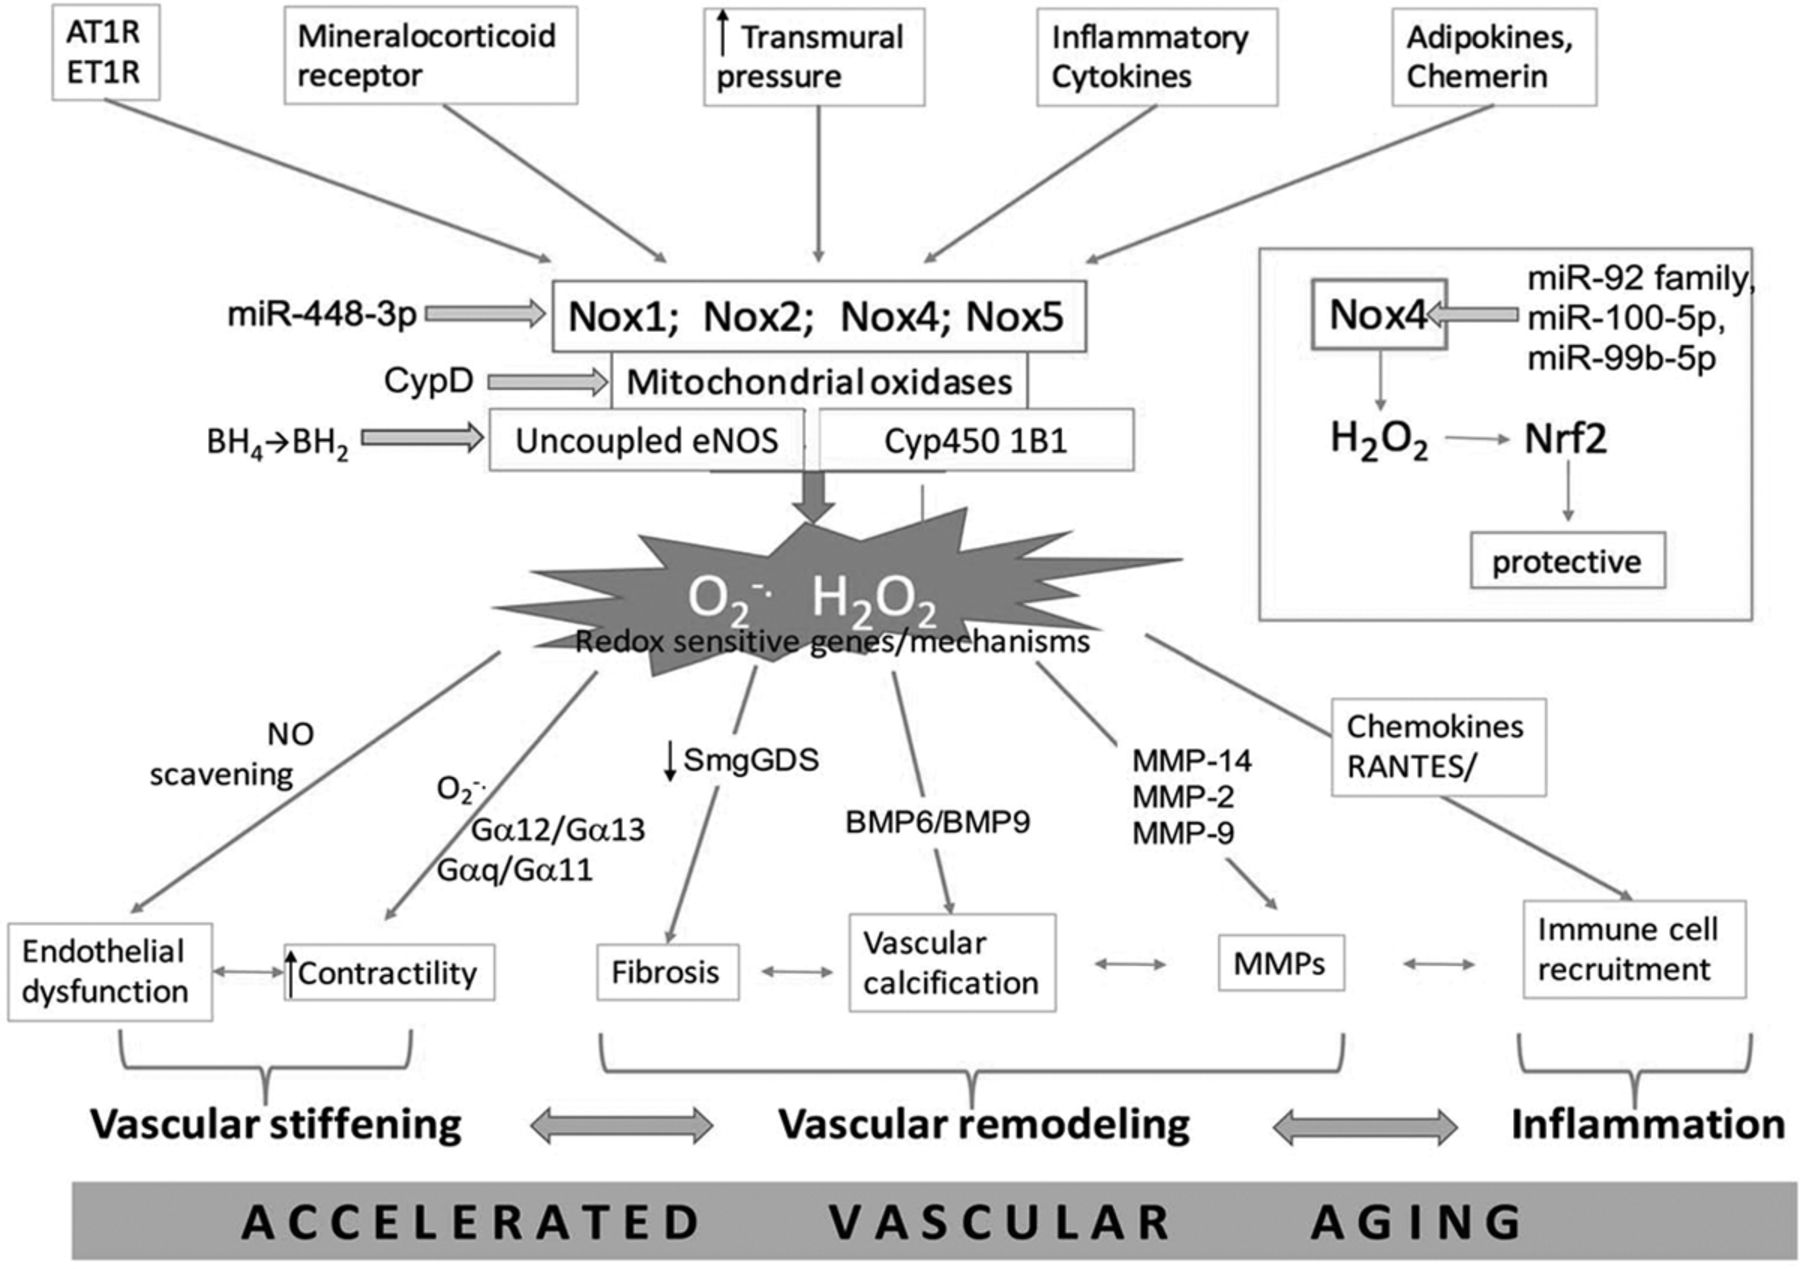 Oxidative Stress, Inflammation, and Vascular Aging in Hypertension